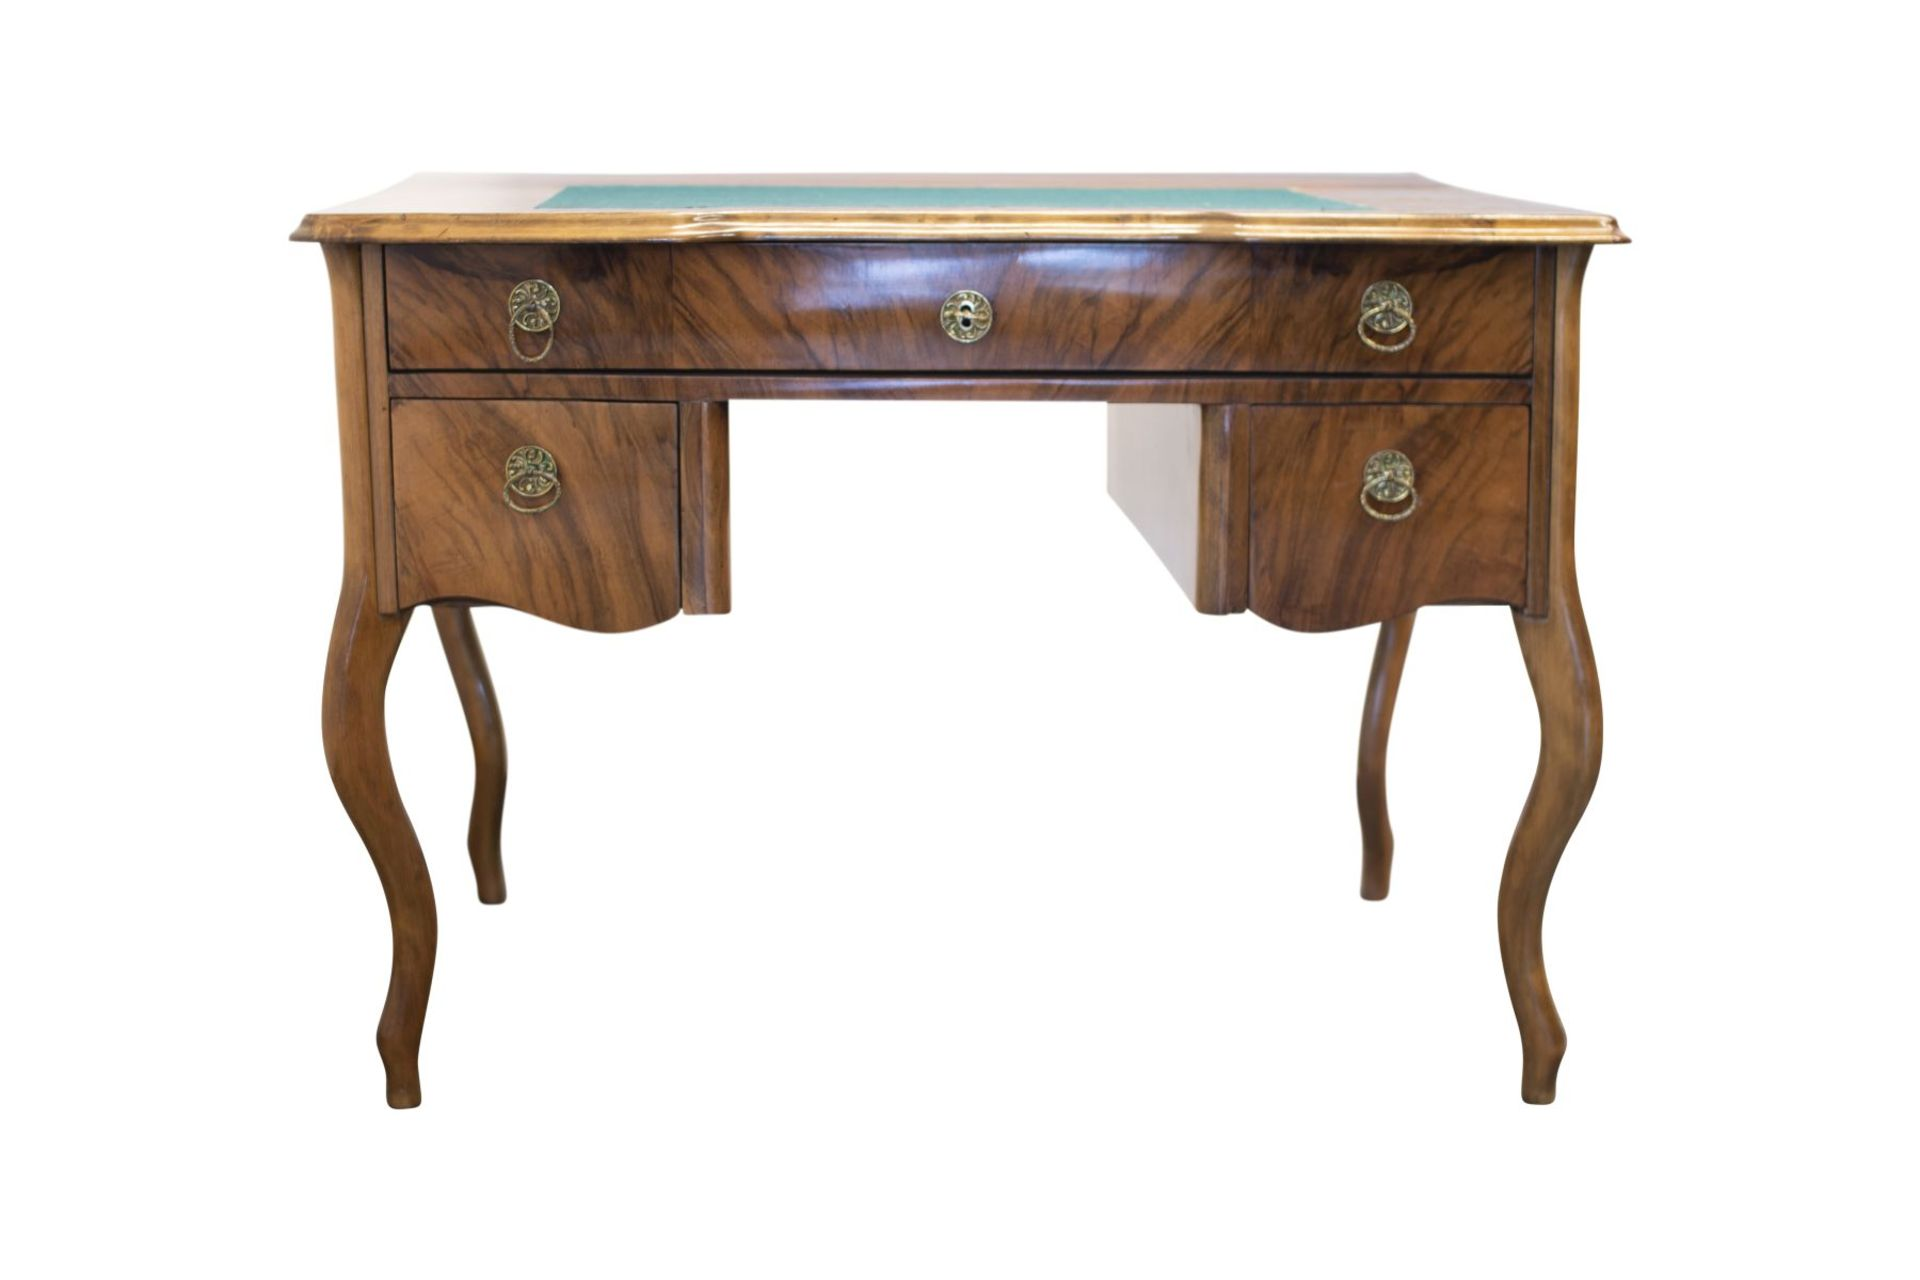 Biedermeier style desk, second half of the 19th century